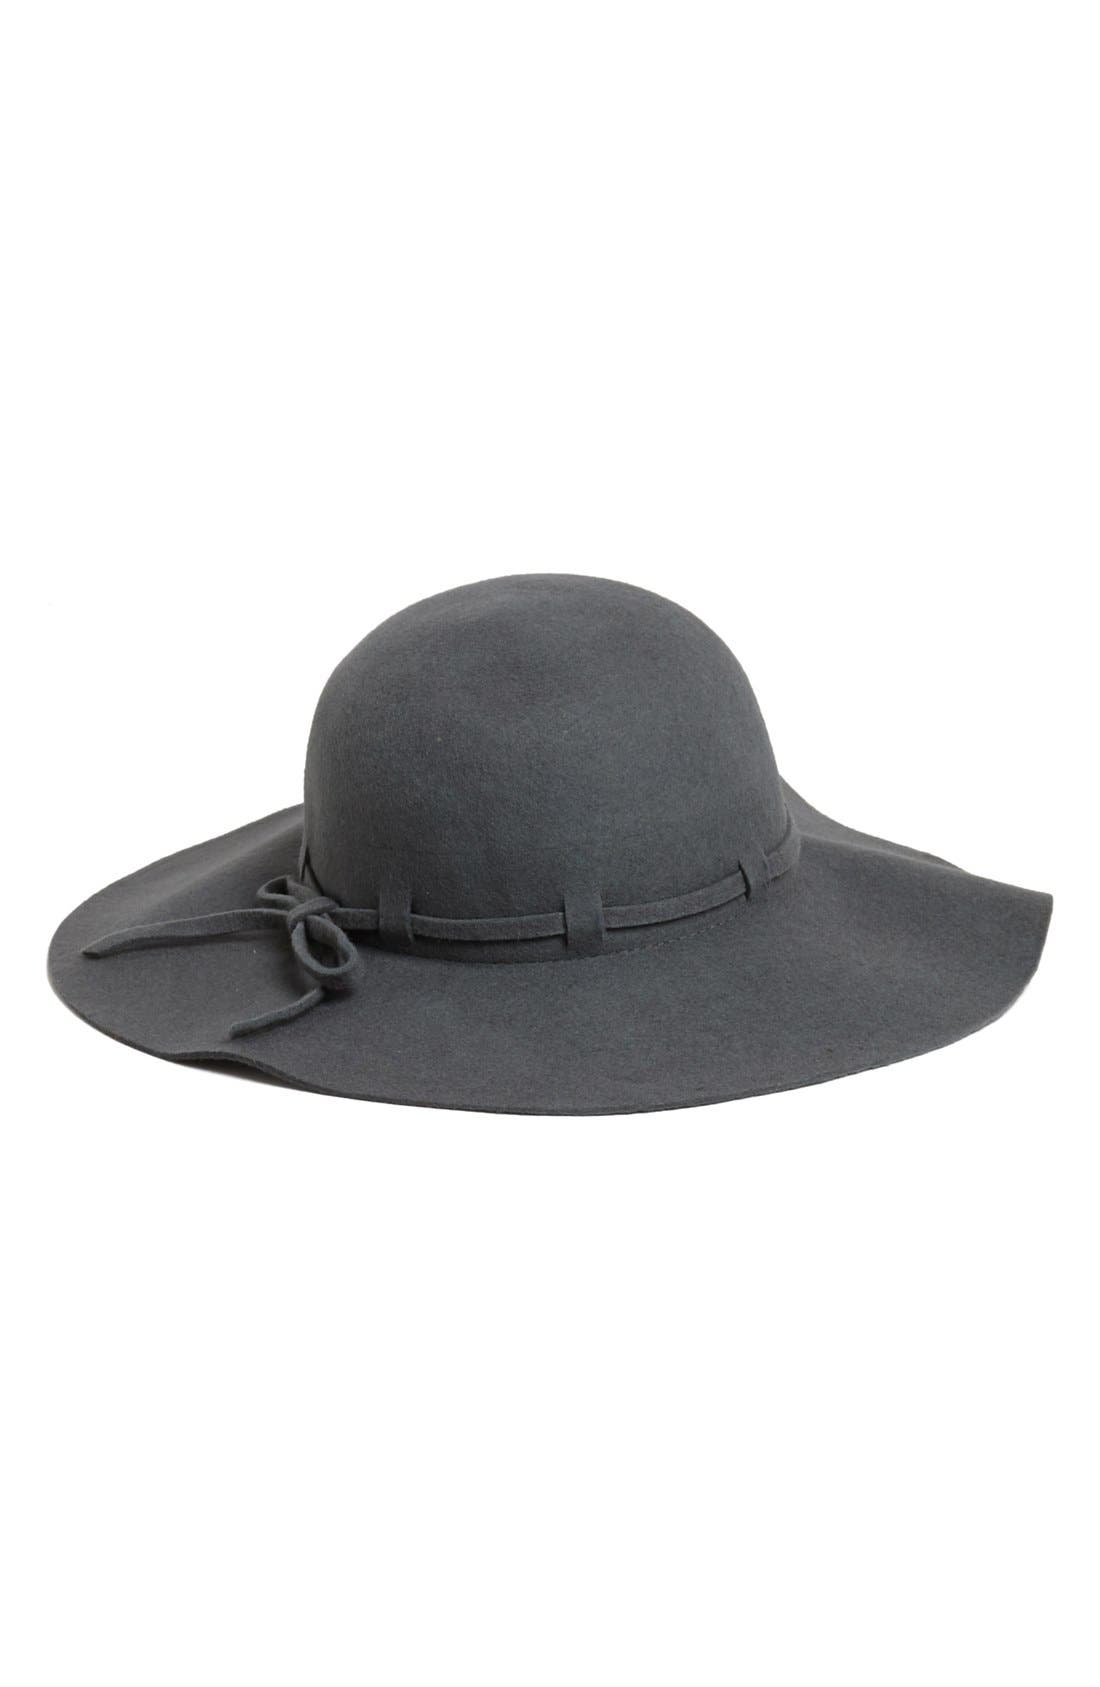 Alternate Image 1 Selected - Collection XIIX Floppy Wool Felt Hat